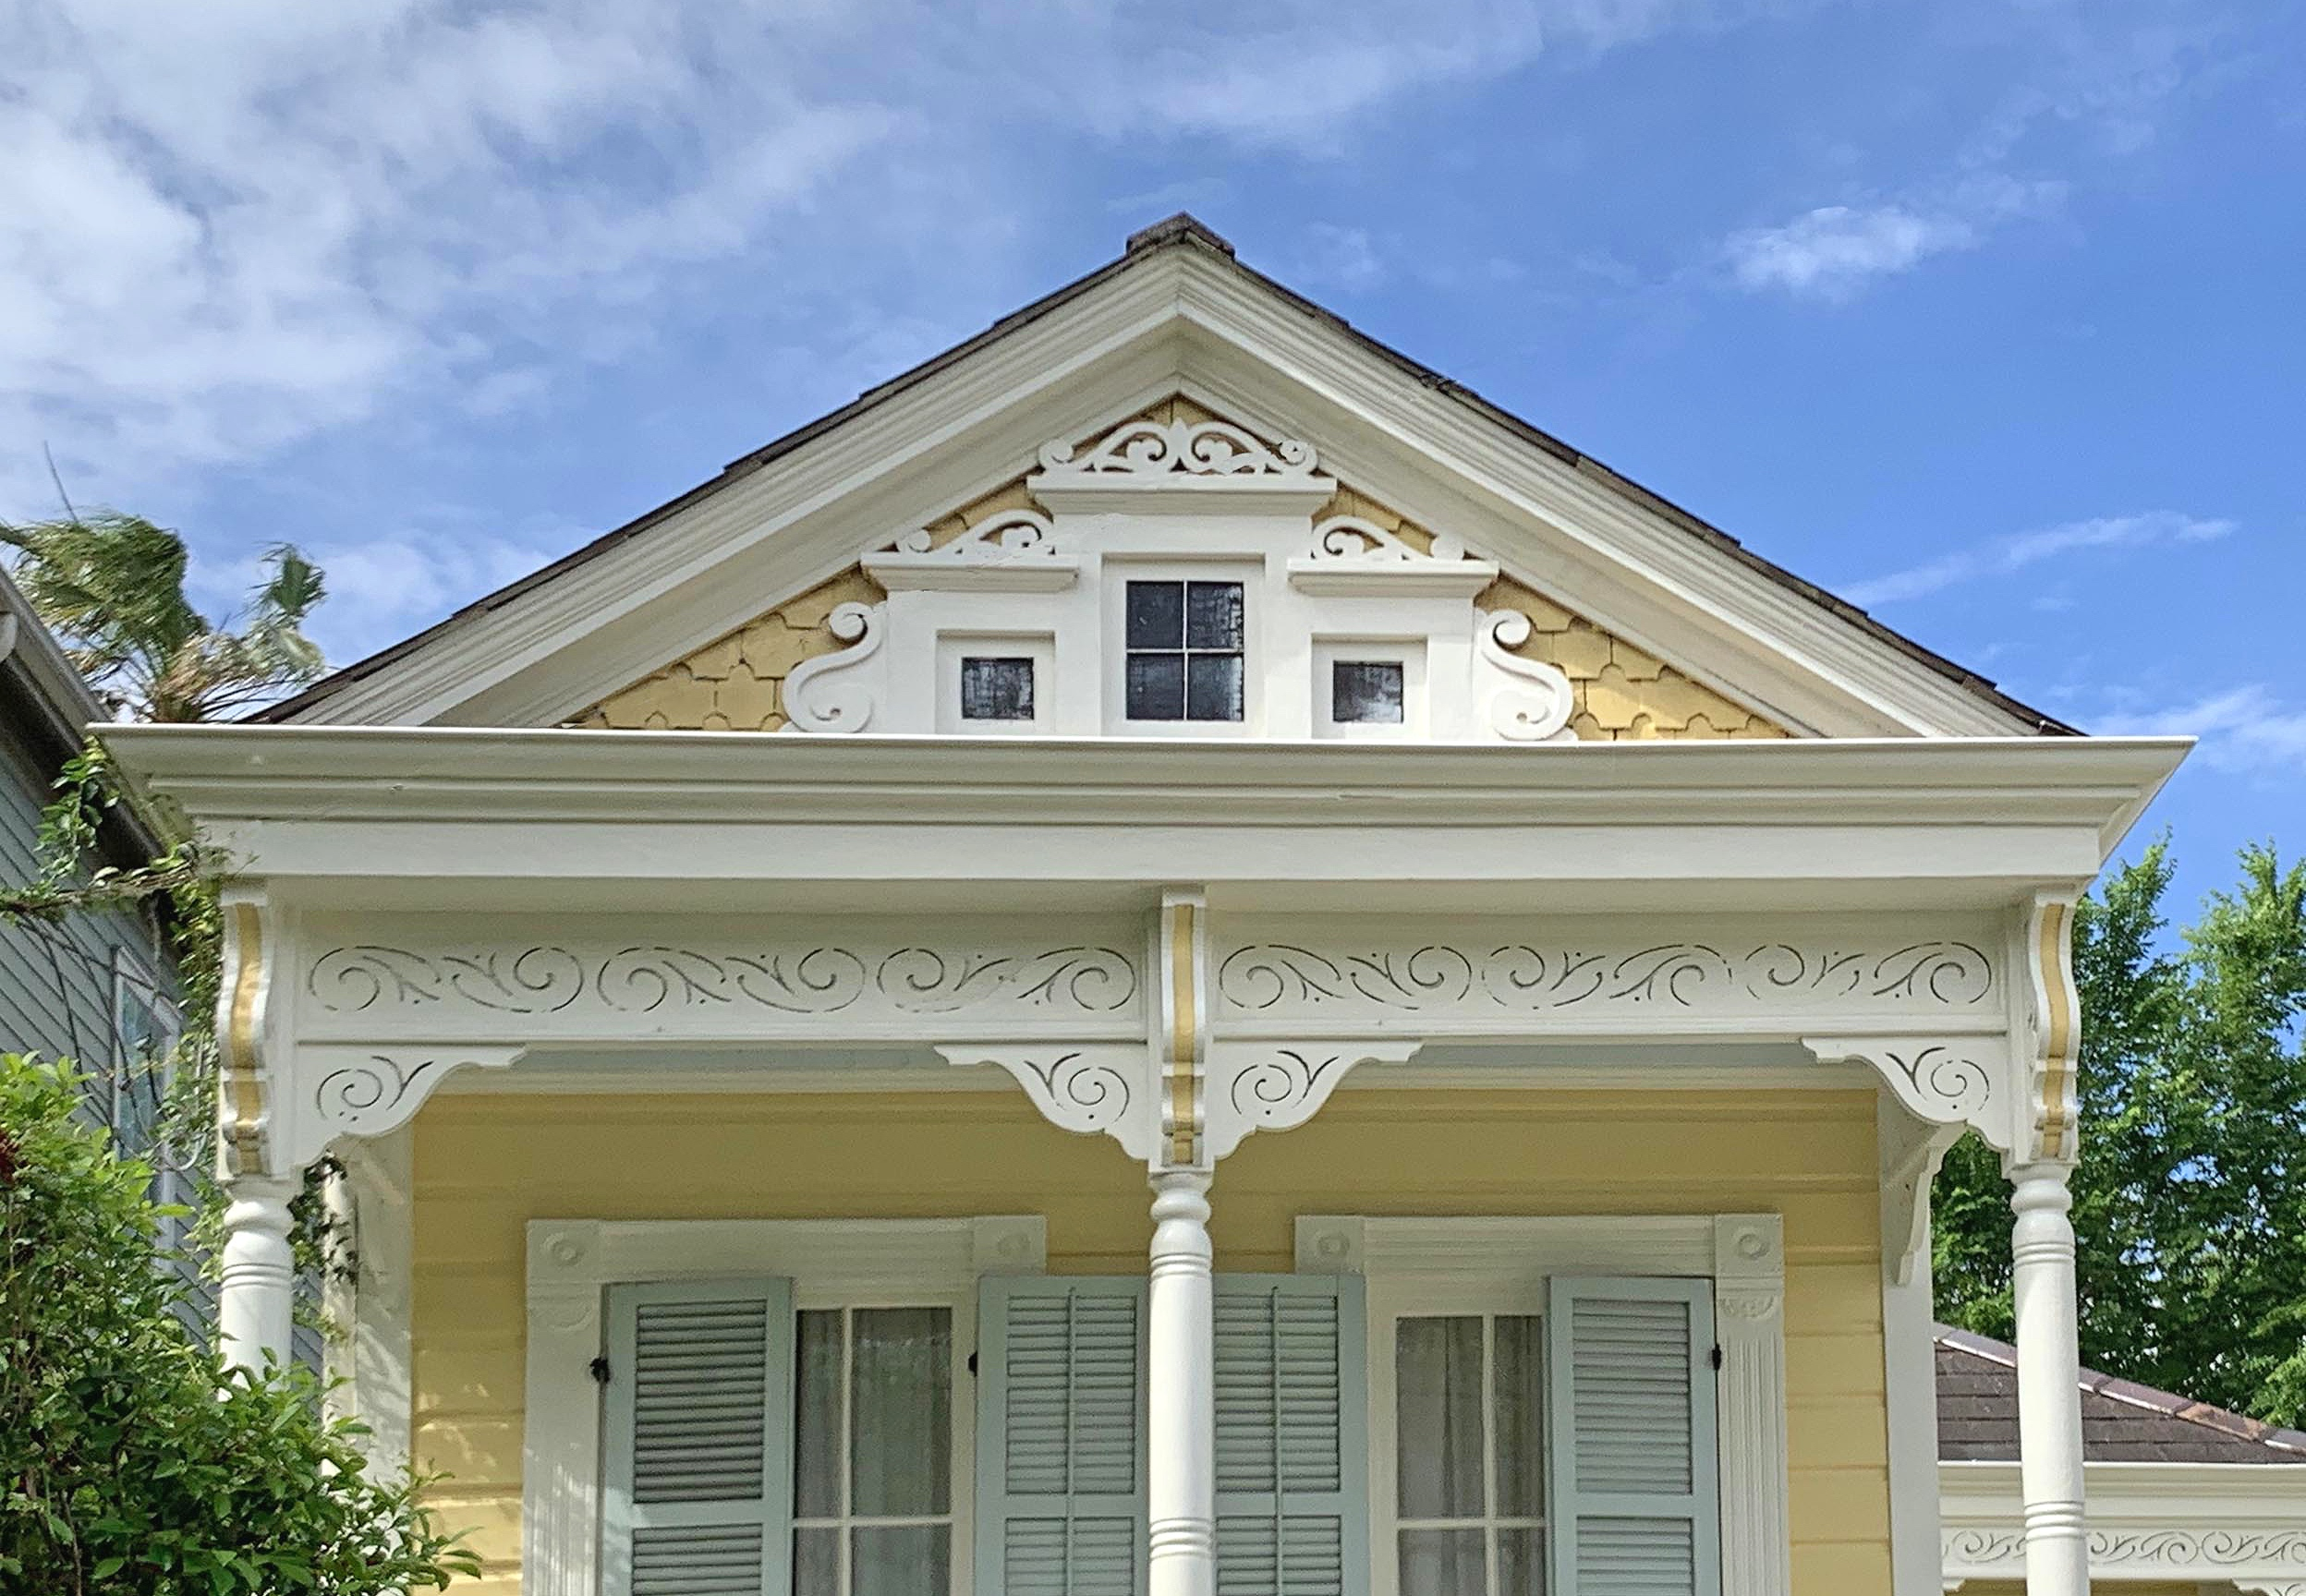 This photo won the Preservation Resource Center's photo challenge for architectural details in New Orleans.